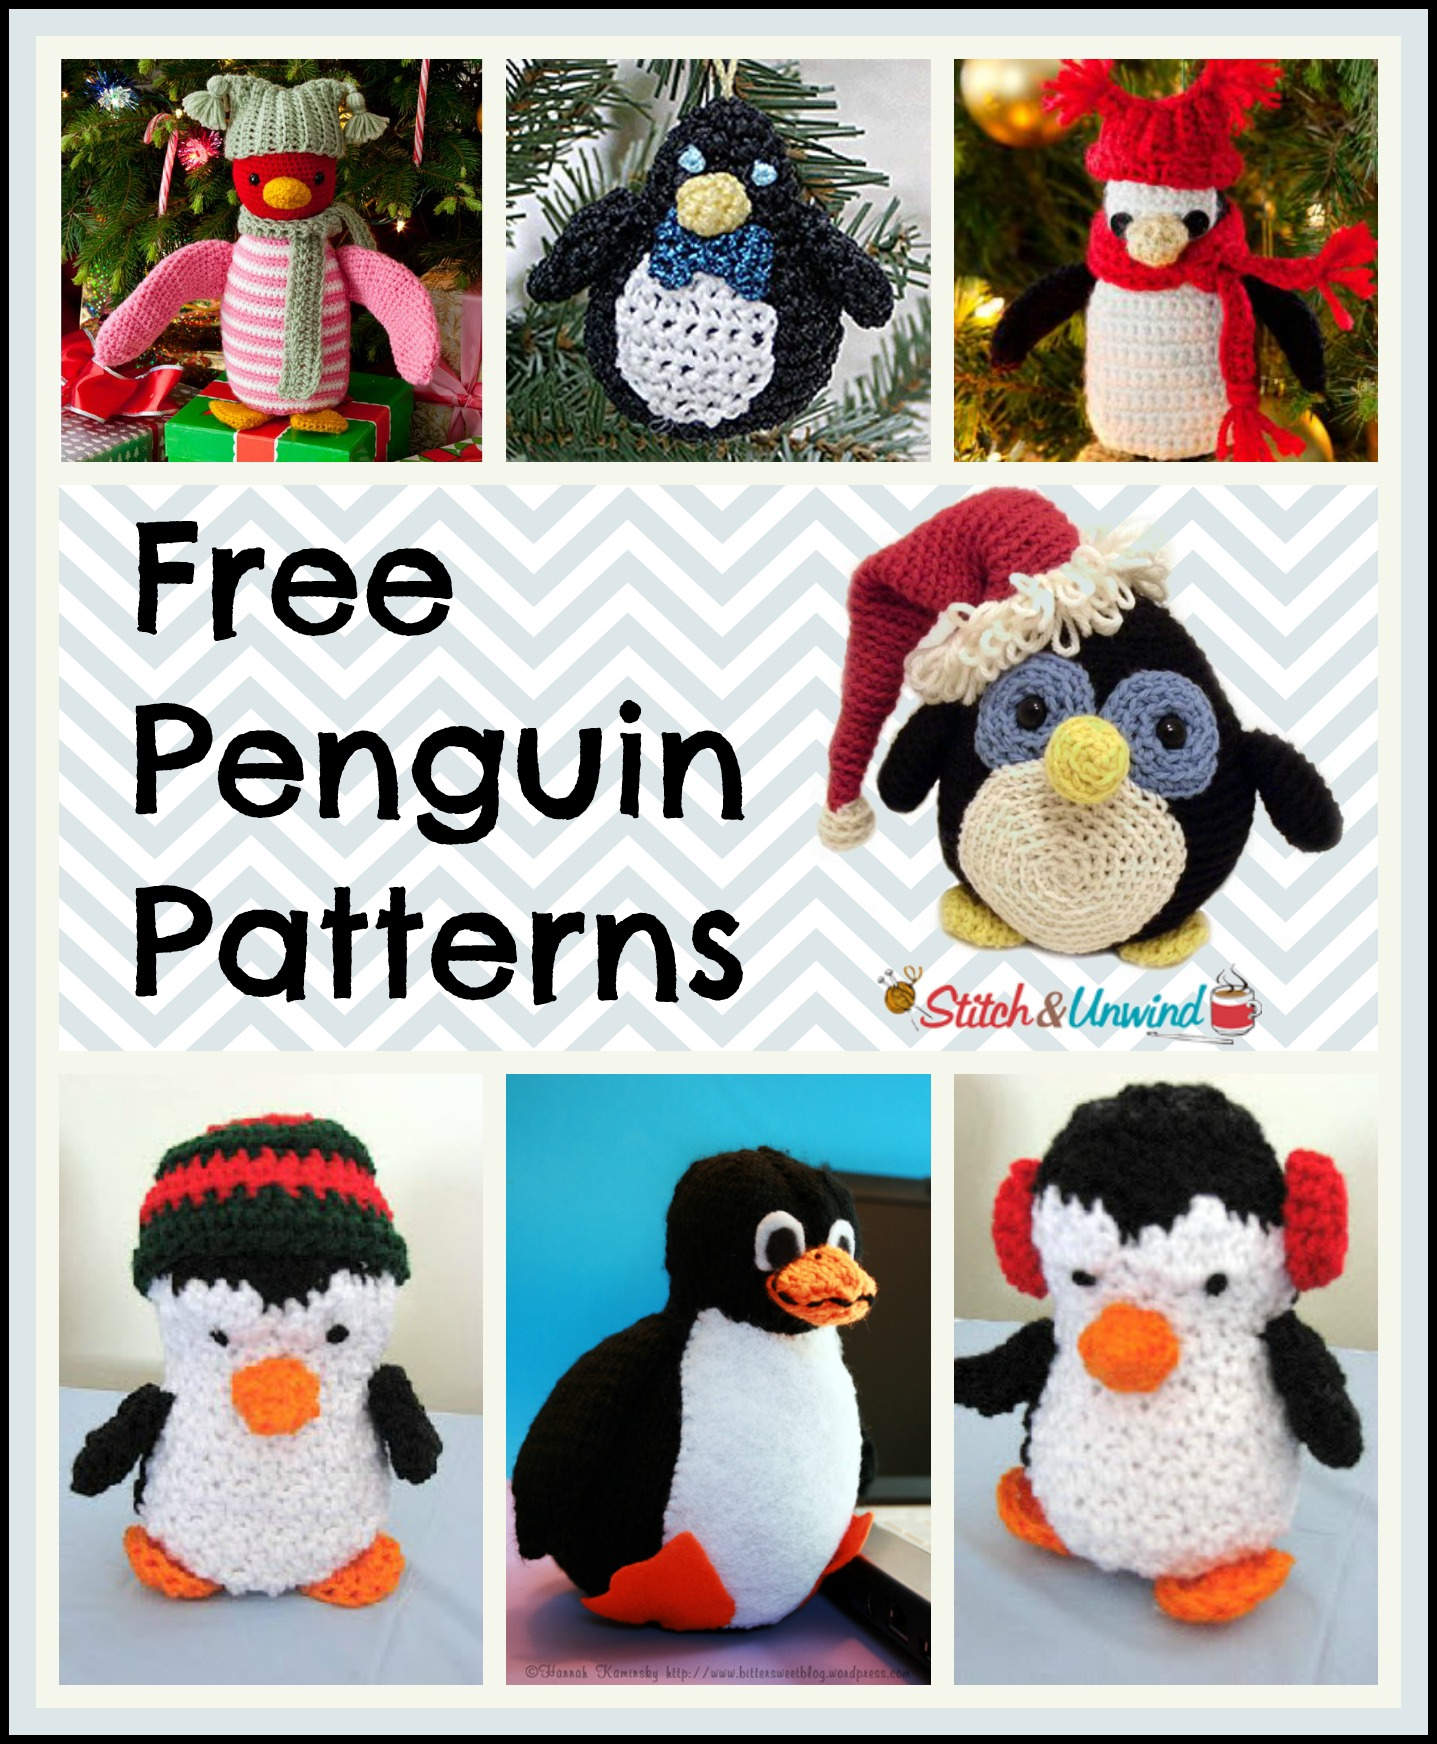 March of the Yarn Penguins: Crochet & Knit a Happy Penguin - Stitch ...